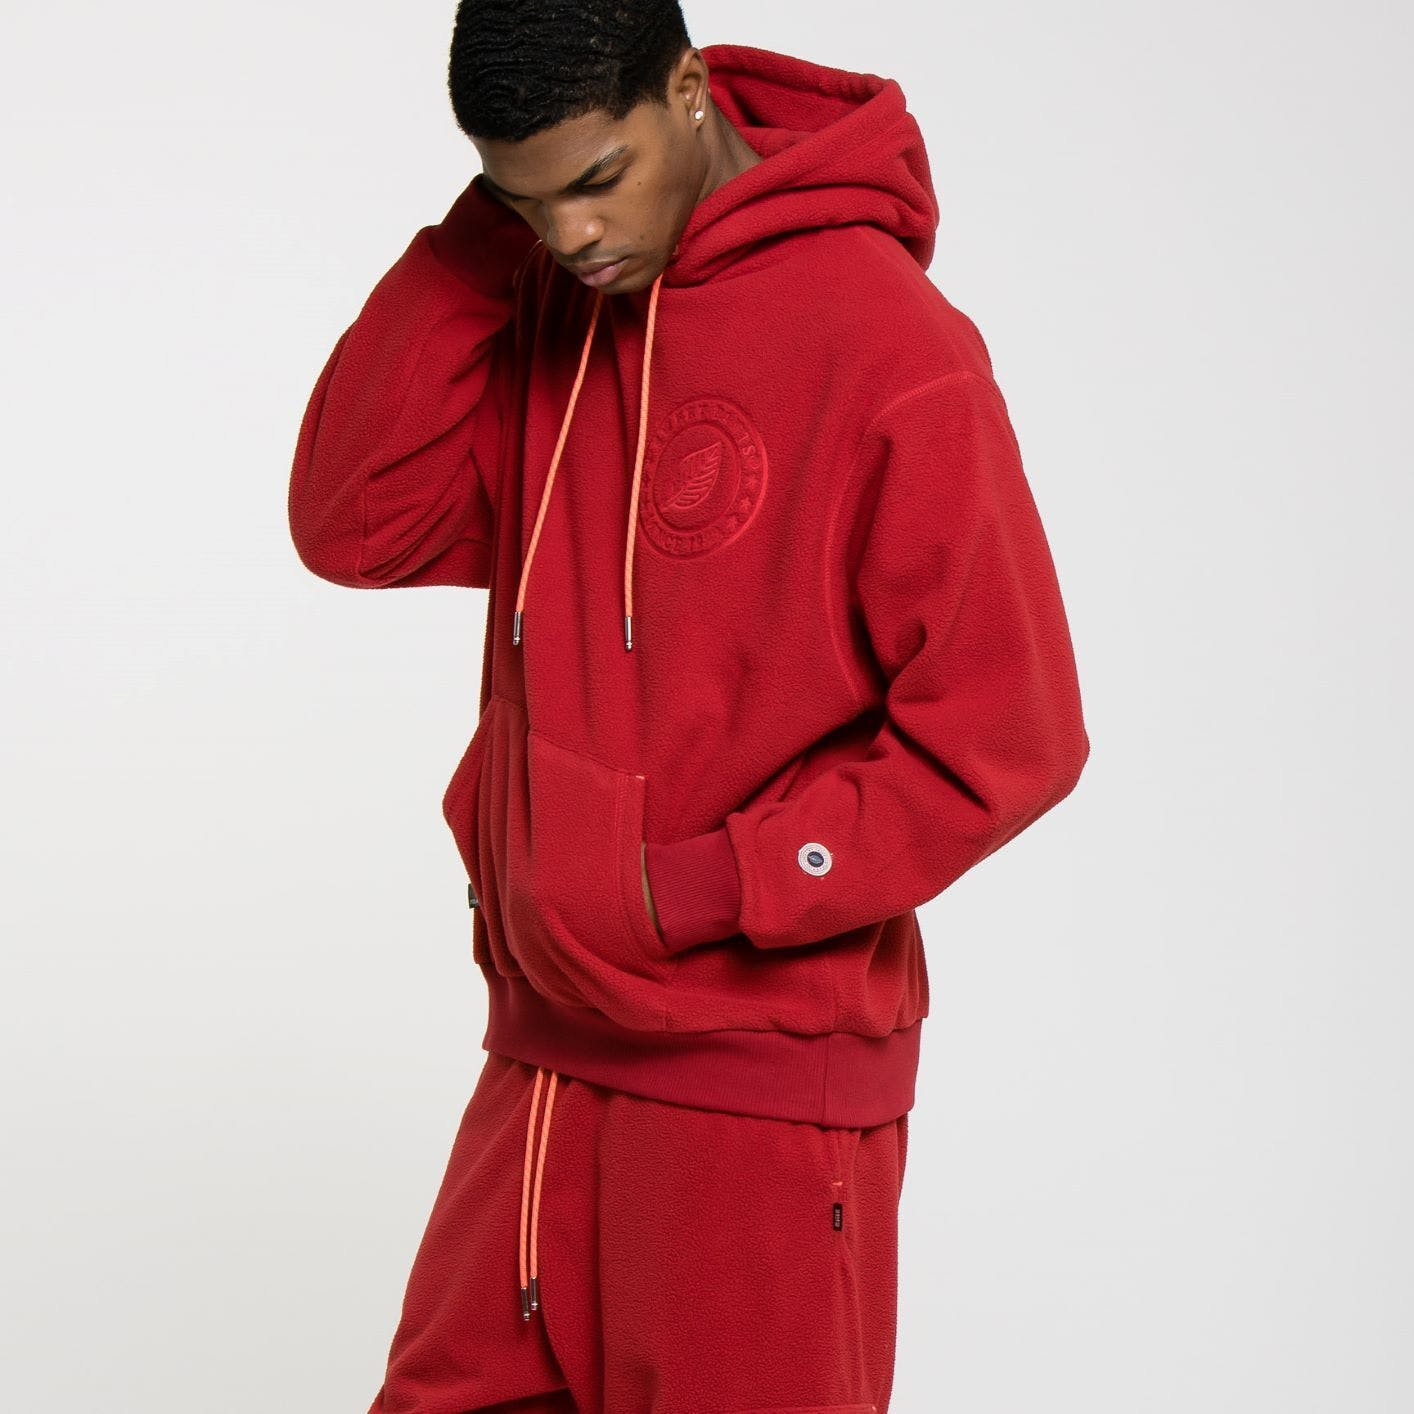 POLAIRE HOODIE RED H 8